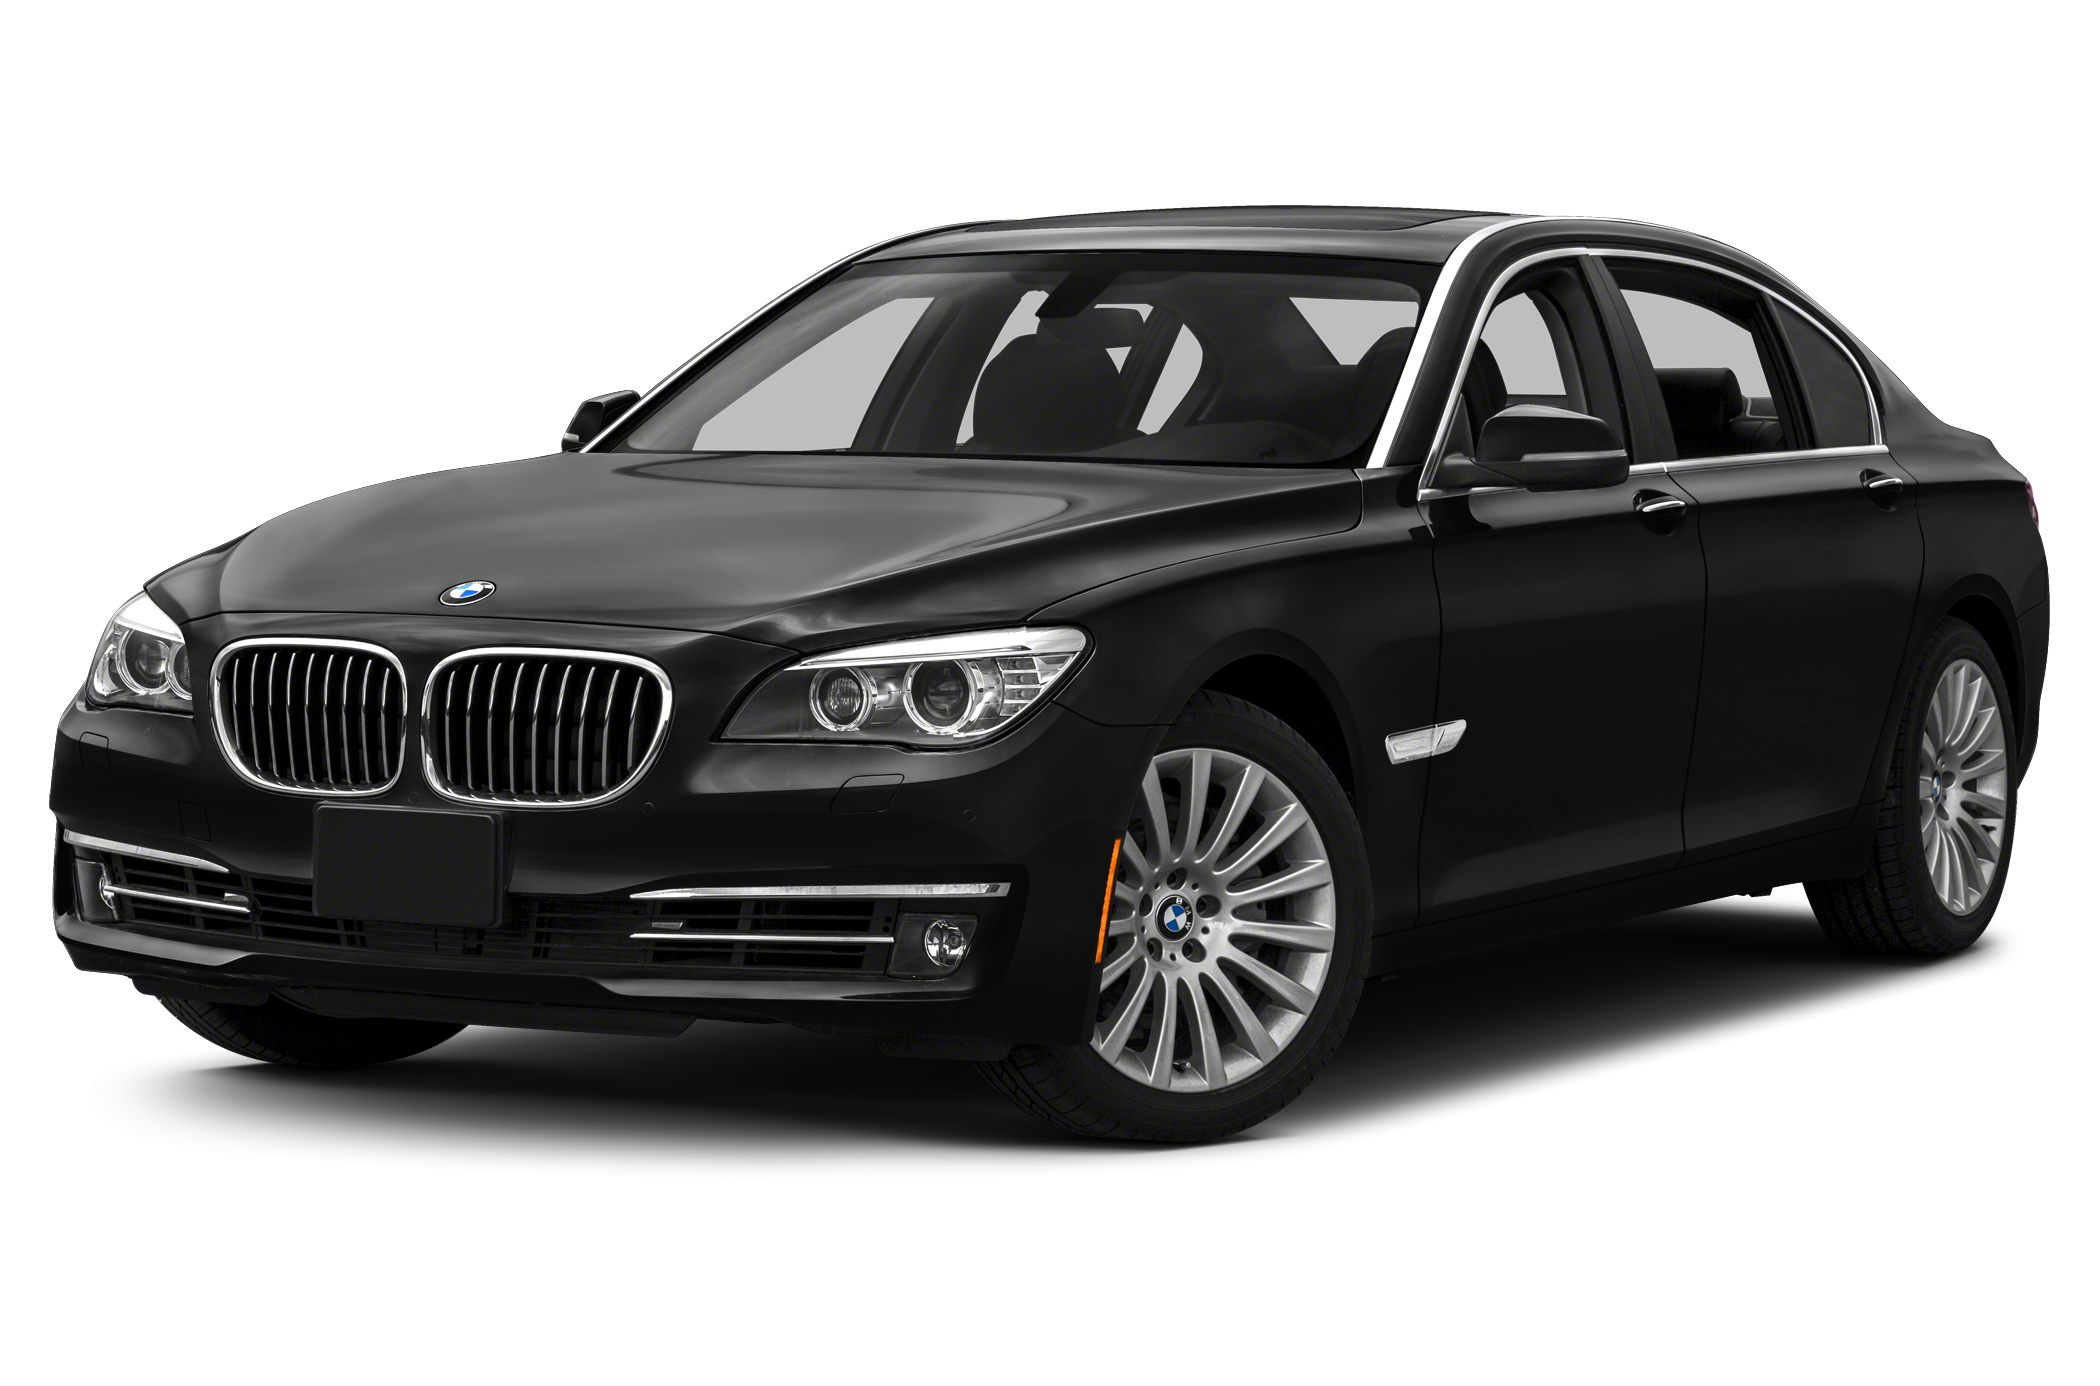 2013 BMW 740 Li XDrive Sedan for sale in Chicago for $59,998 with 24,779 miles.